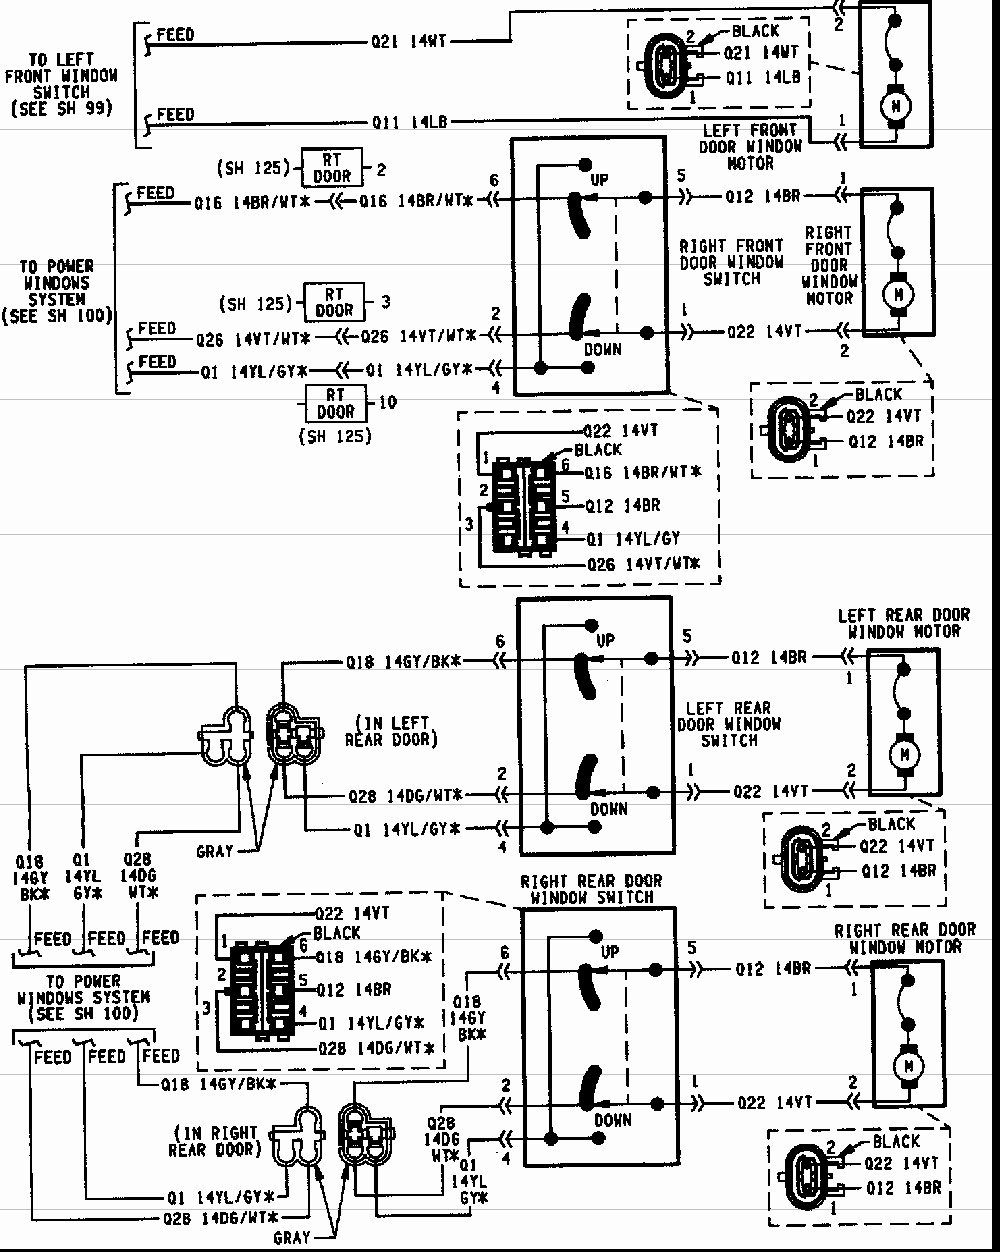 hight resolution of 2003 jeep grand cherokee radio wiring diagram 2002 grand cherokee radio wiring chart trusted diagrams